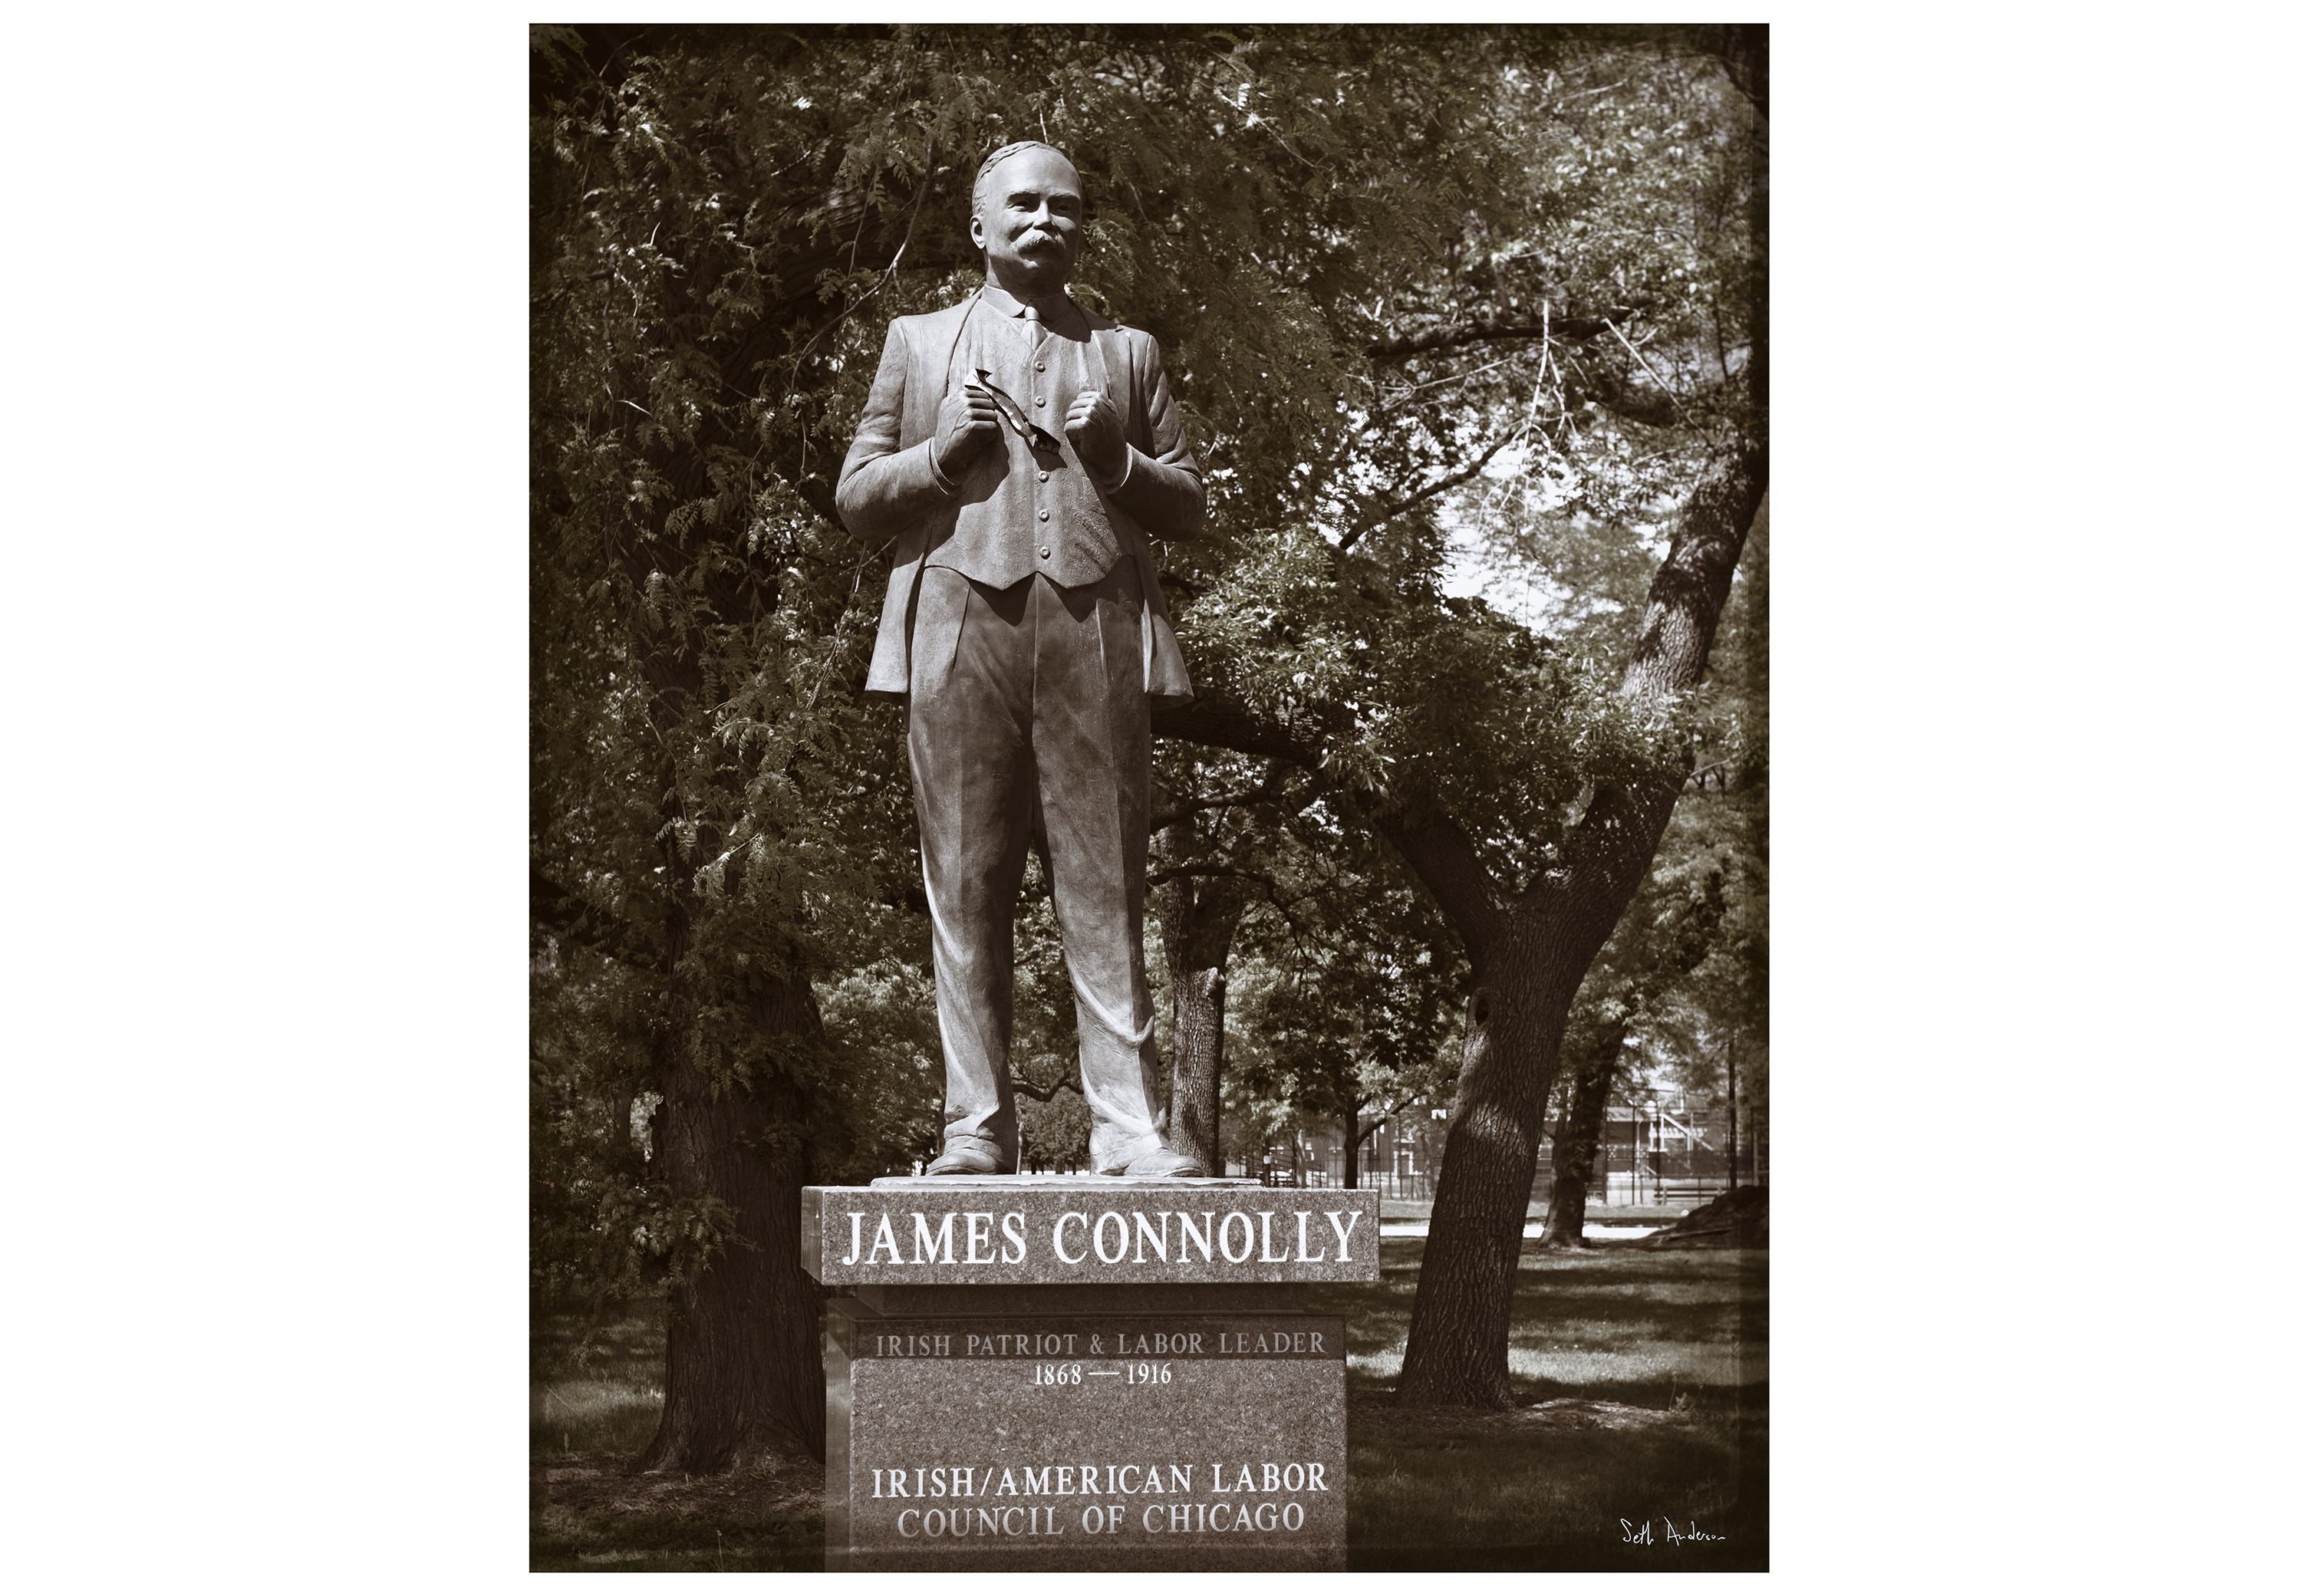 The James Connolly Monument in Chicago's Union Park.